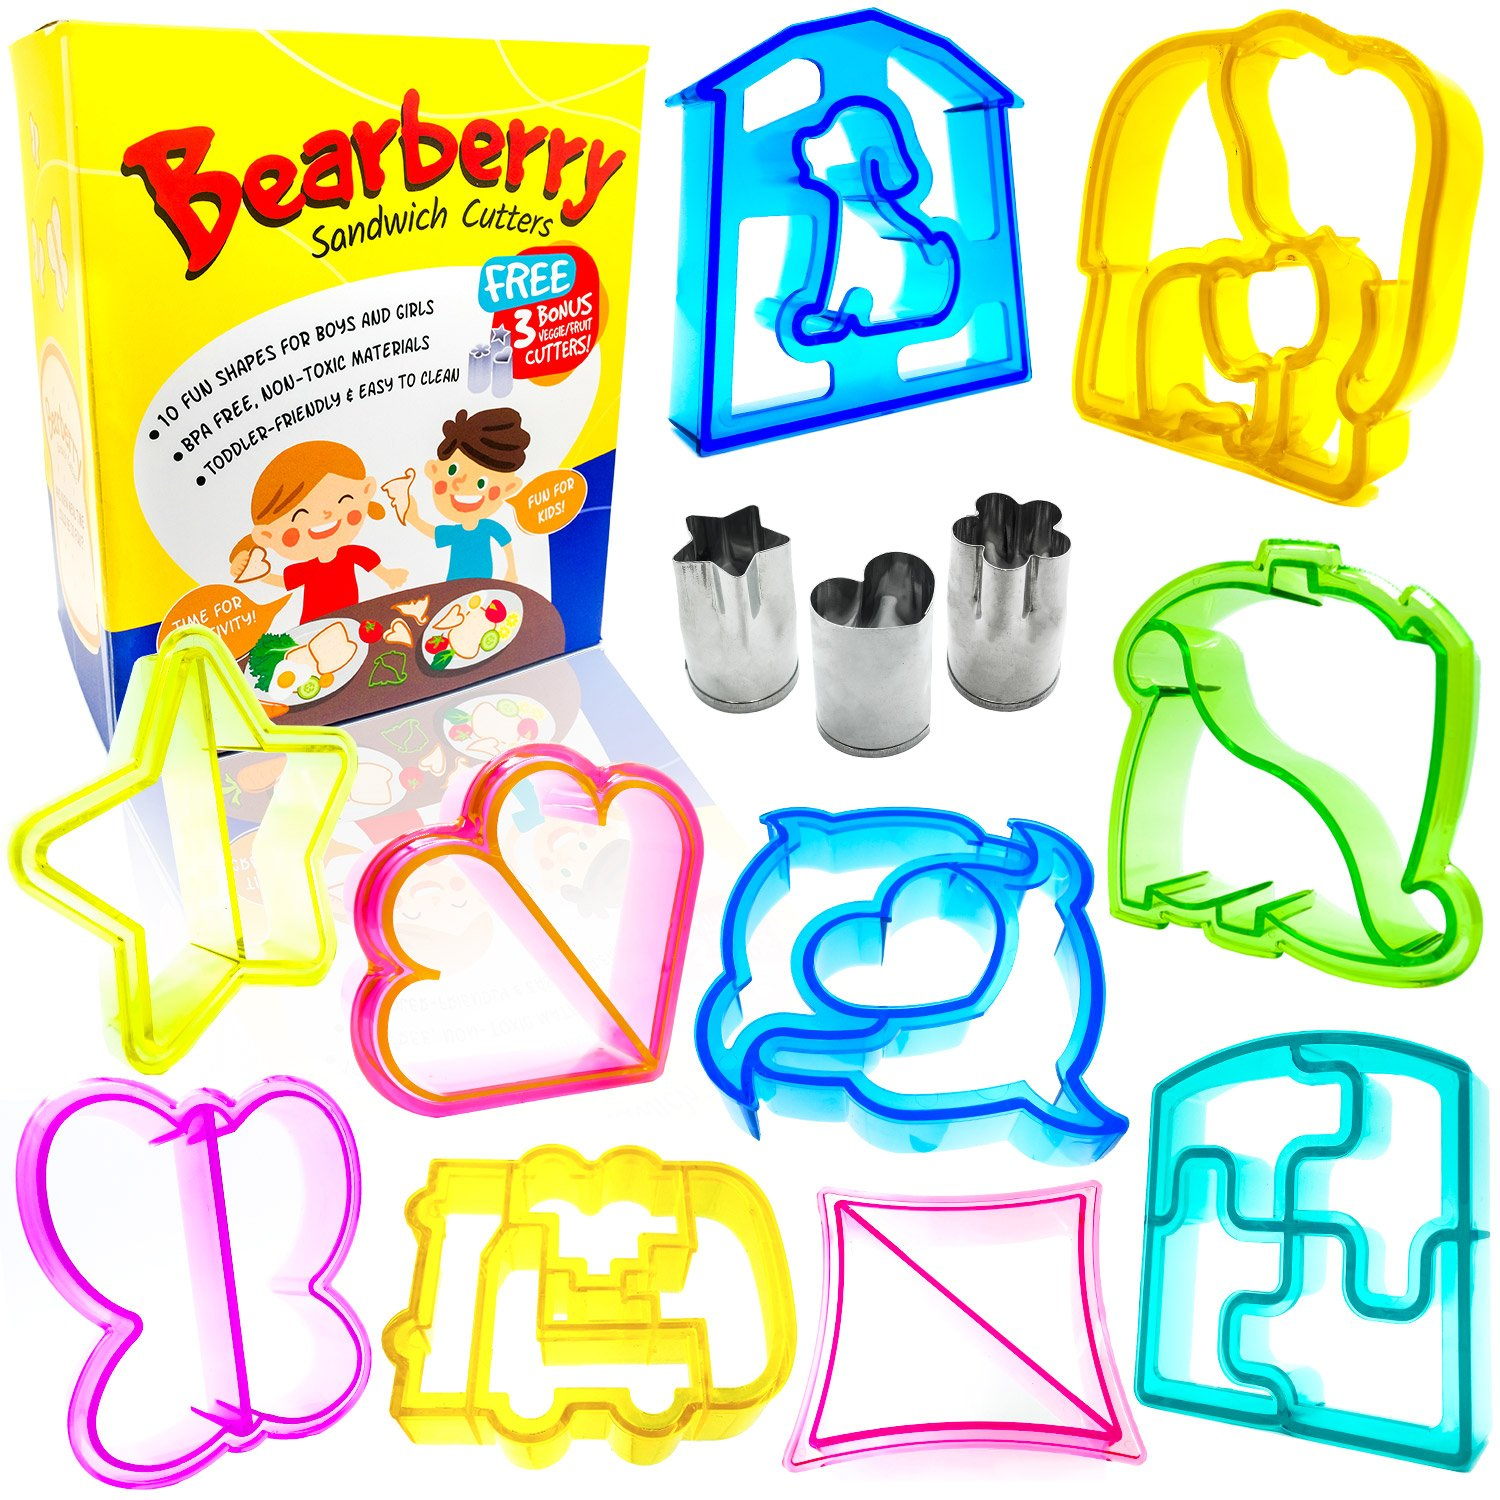 Bearberry Sandwich Cutters, Bread Crust & Cookie Stamp Set - Fun Heart, Dinosaur, Food Shapes for Kids Bento Lunch Box, Boys and Girls - GET FREE Mini Stainless Steel Vegetable & Fruit Press!